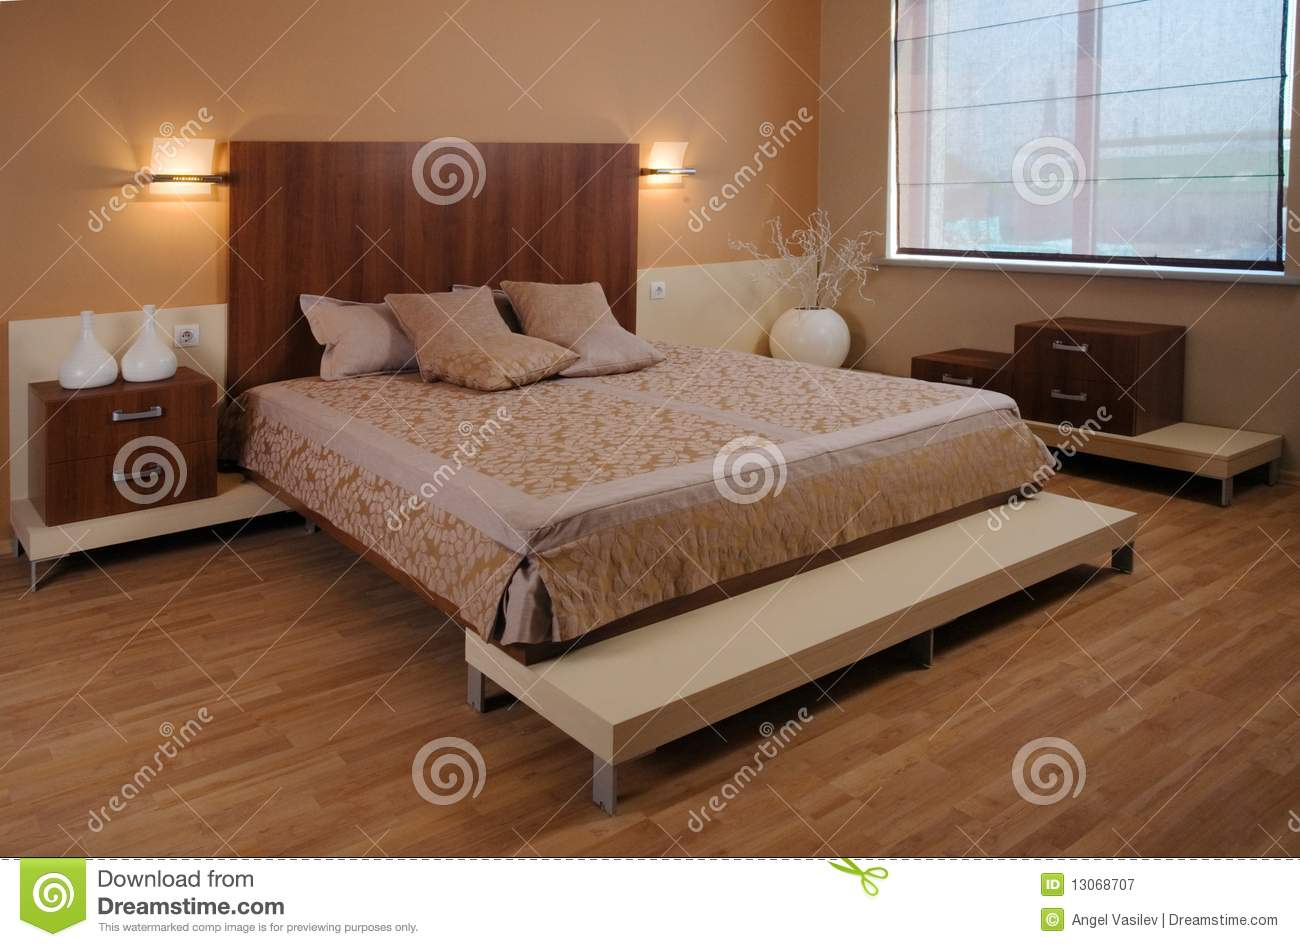 Beautiful Contemporary Bedrooms Of Beautiful And Modern Bedroom Interior Design Stock Photo